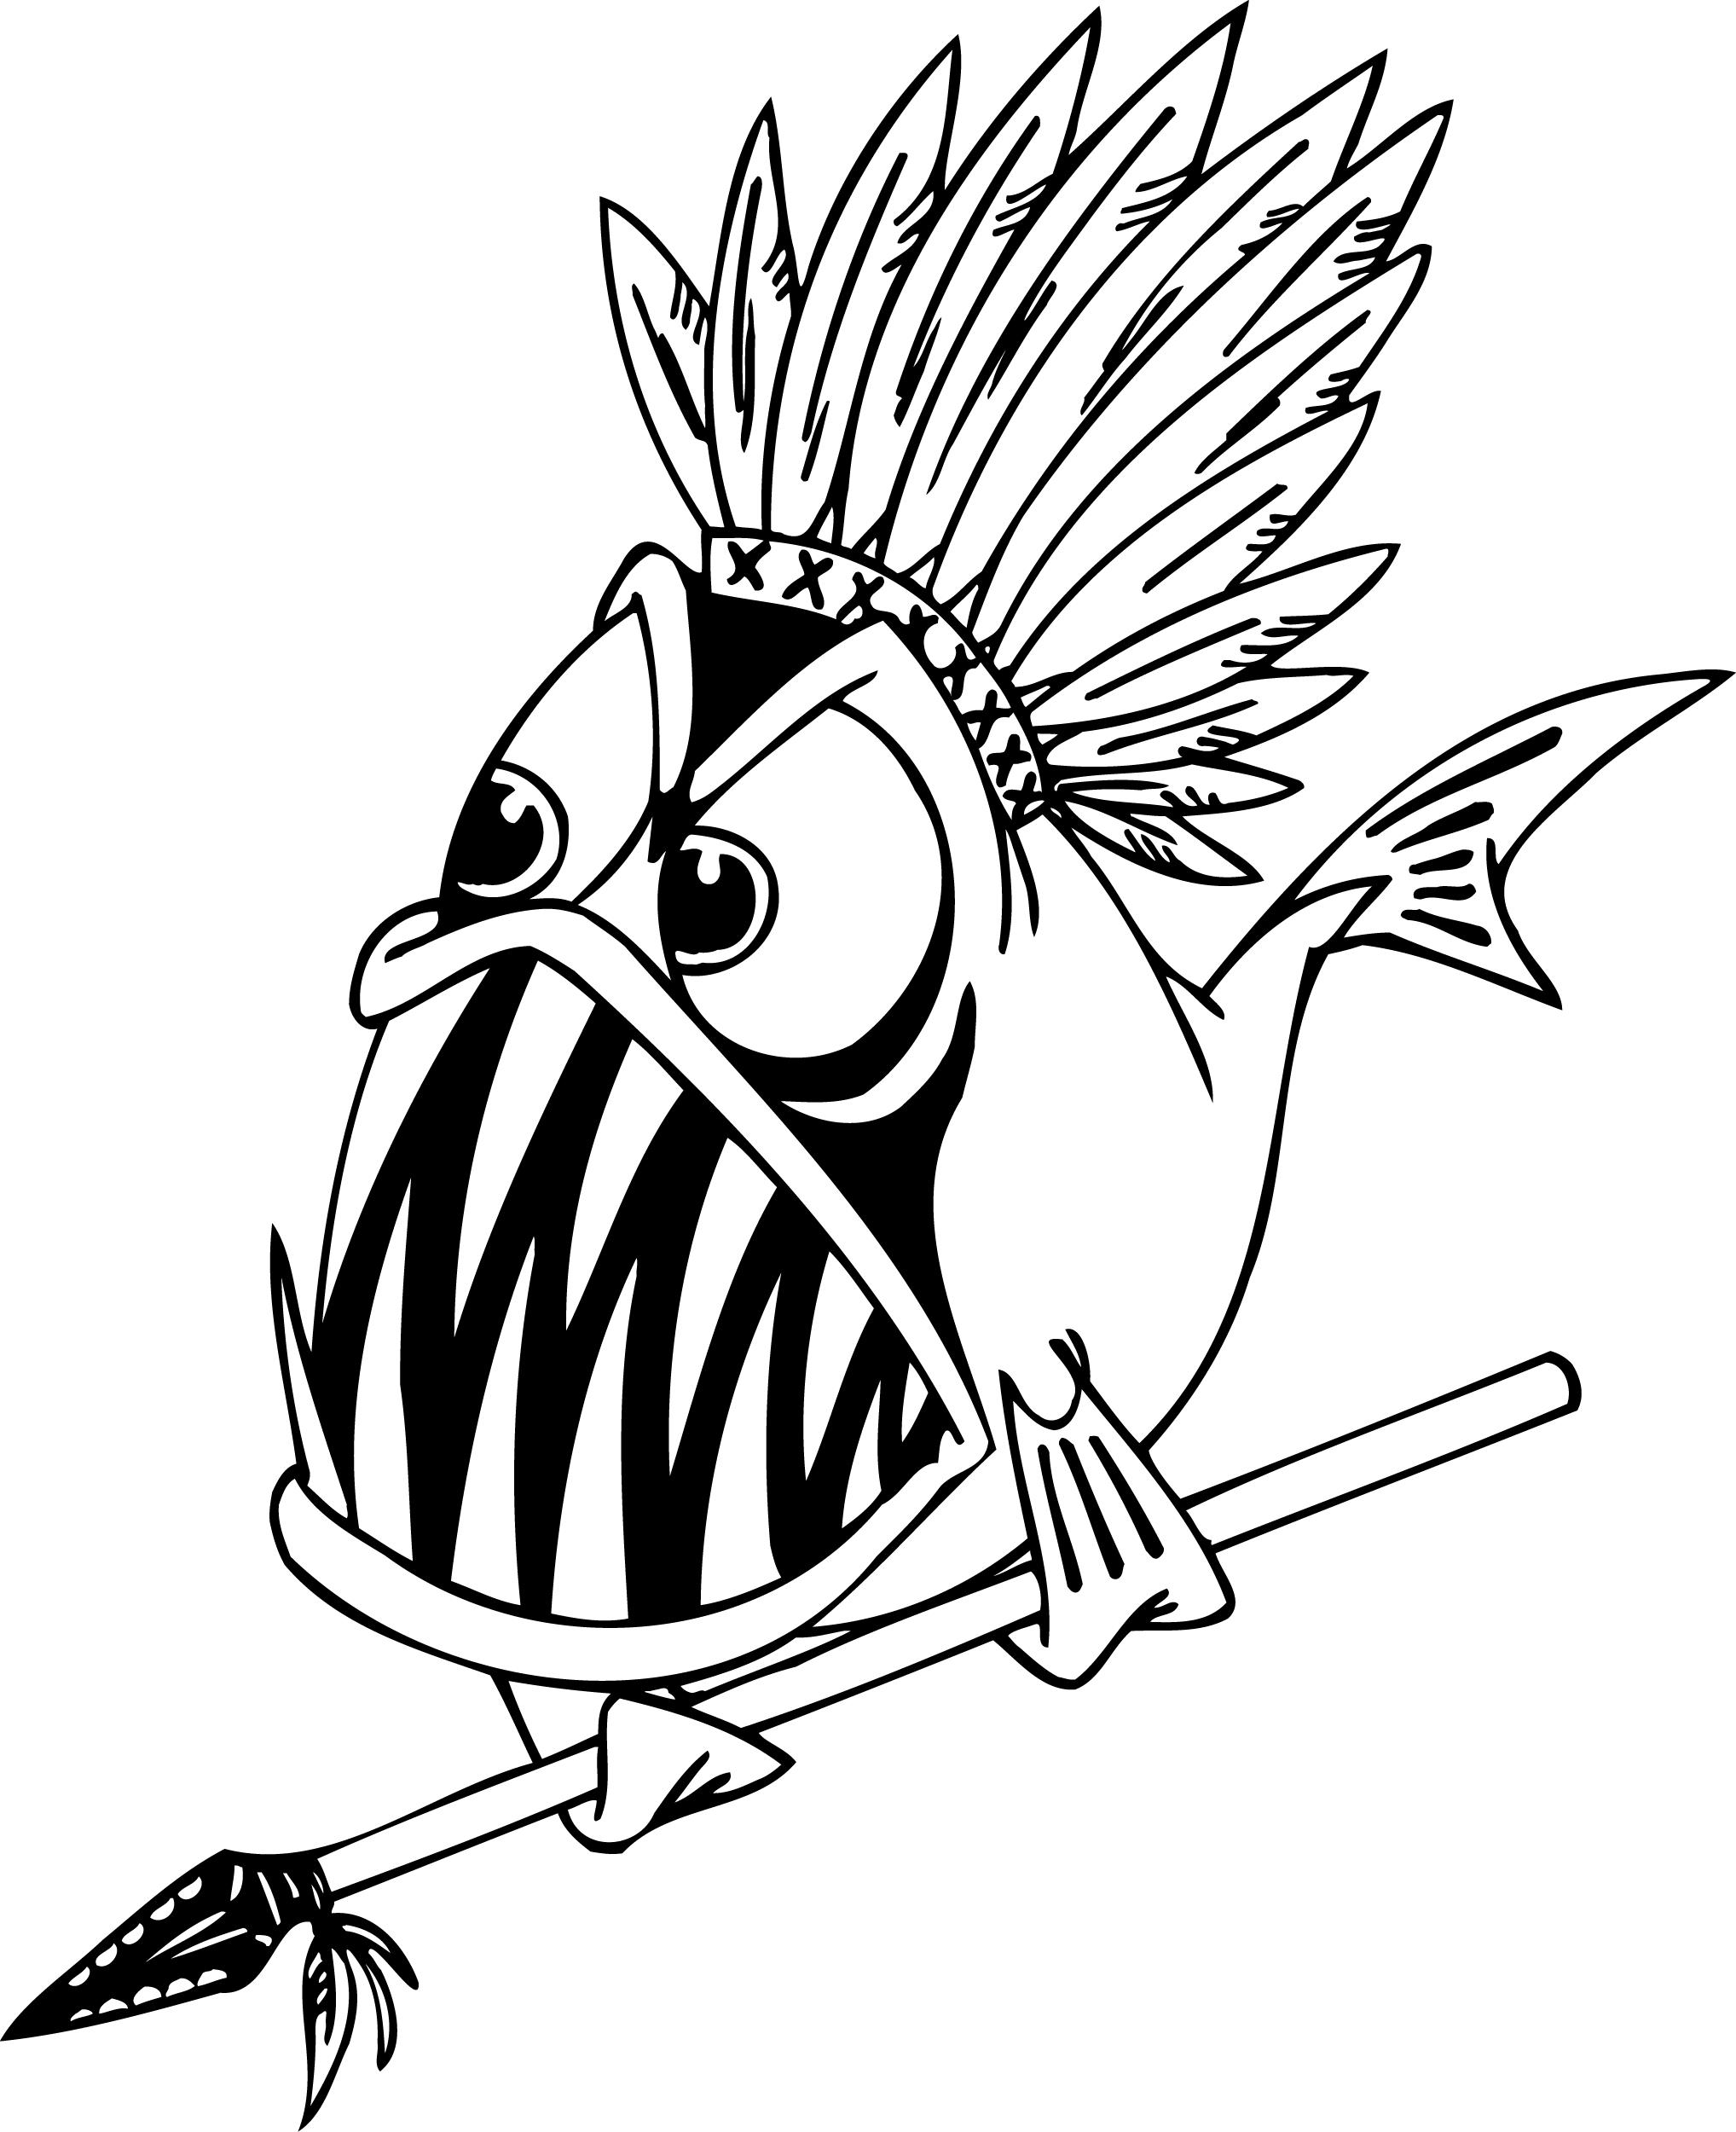 Detailed Fish Coloring Pages